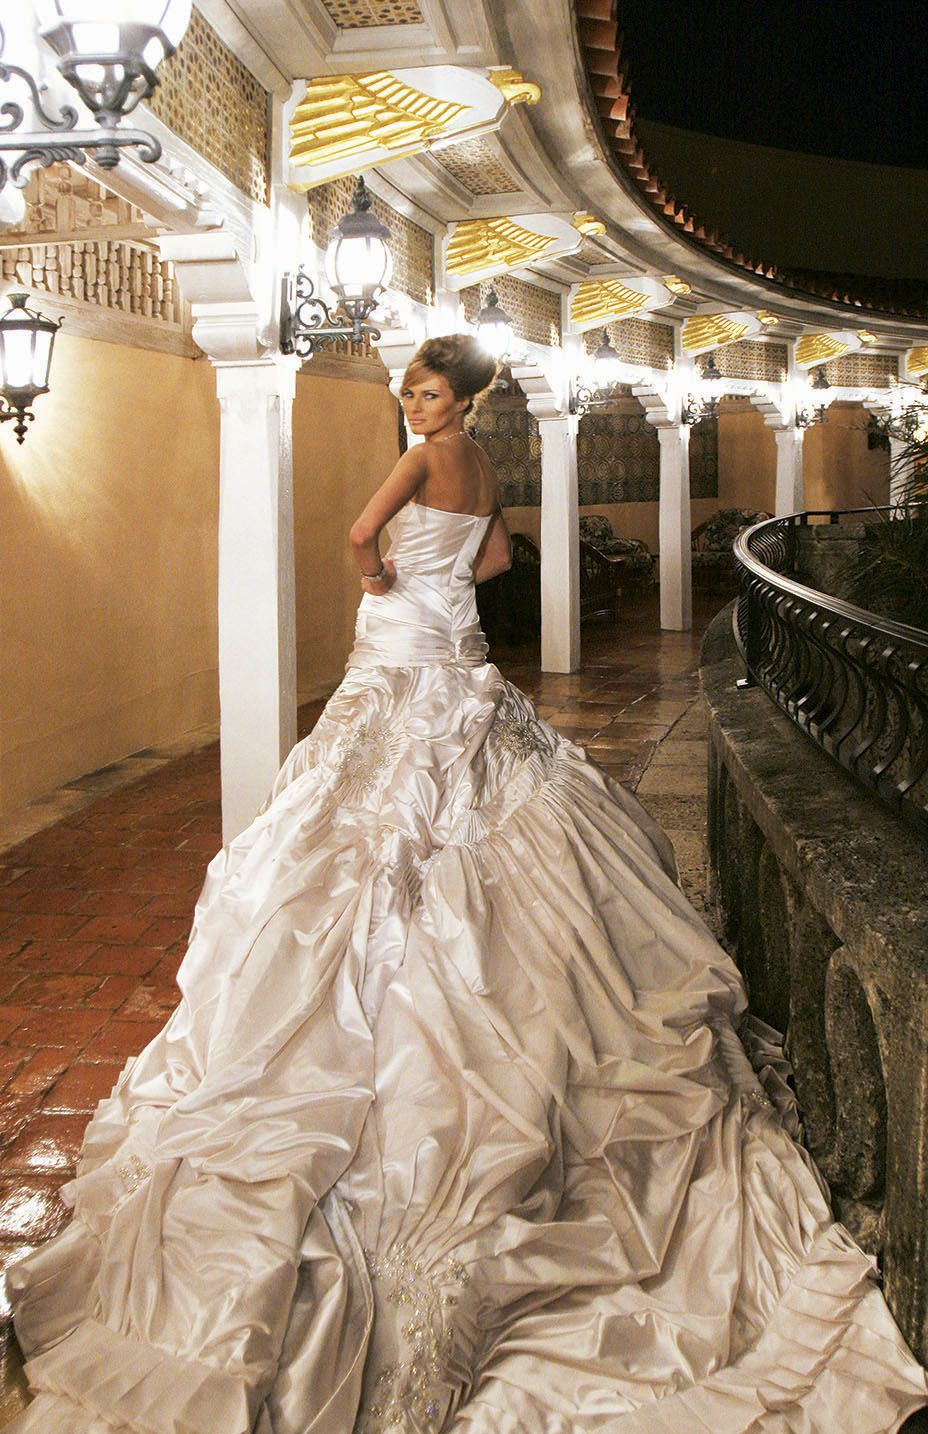 Pin By Doris Benitez On Melania Trump Trump Wedding Trump Wedding Dress Melania Trump Wedding